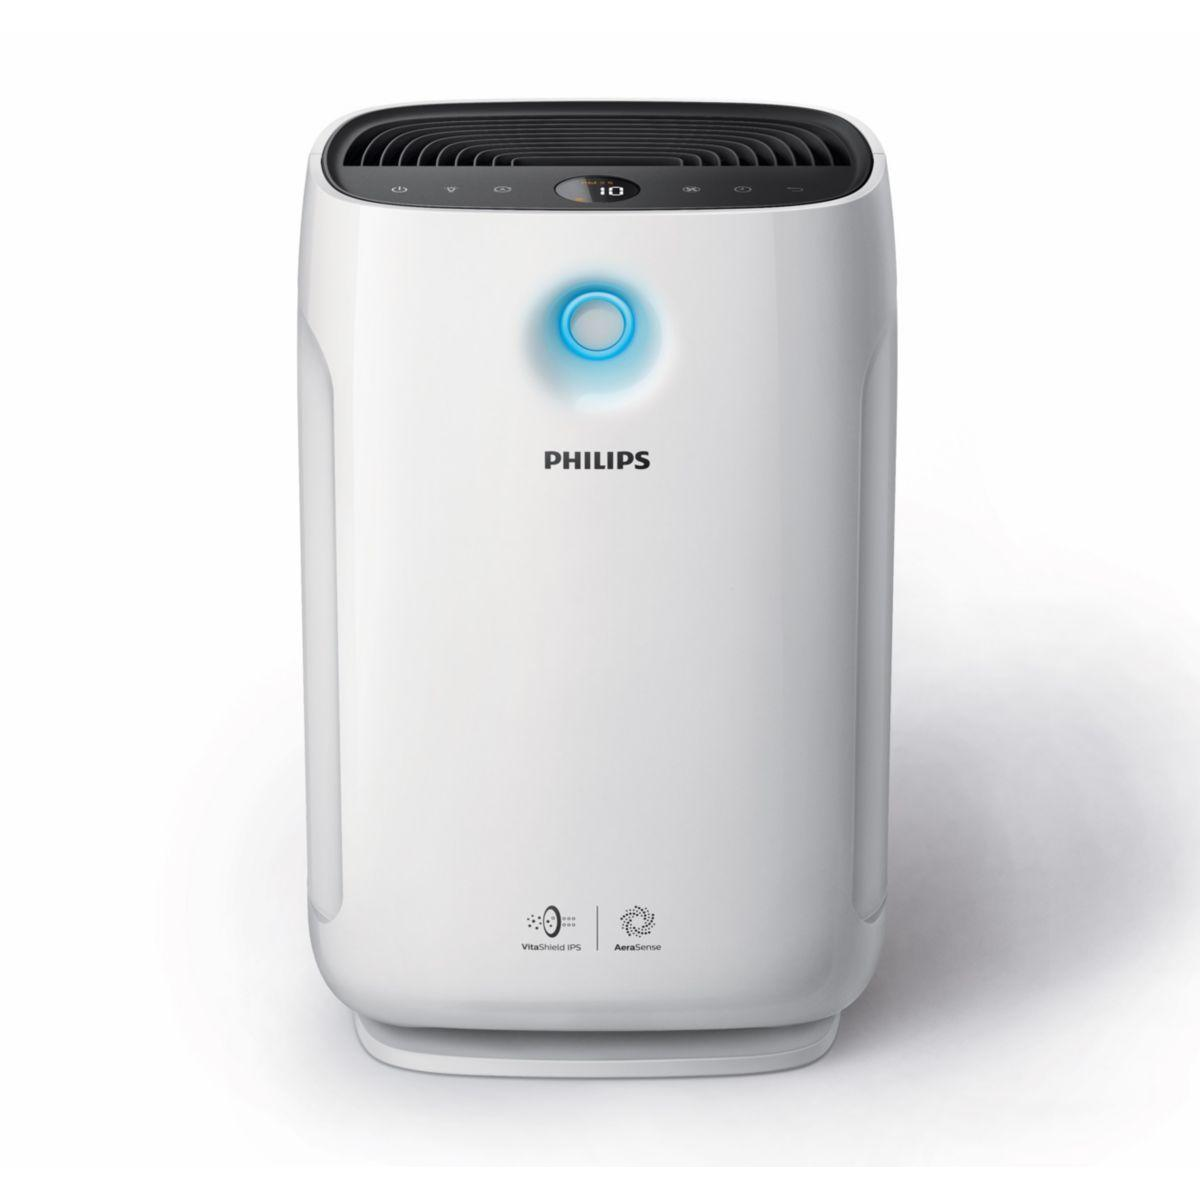 Purificateur d'air philips ac2887/10 - livraison offerte : code liv (photo)